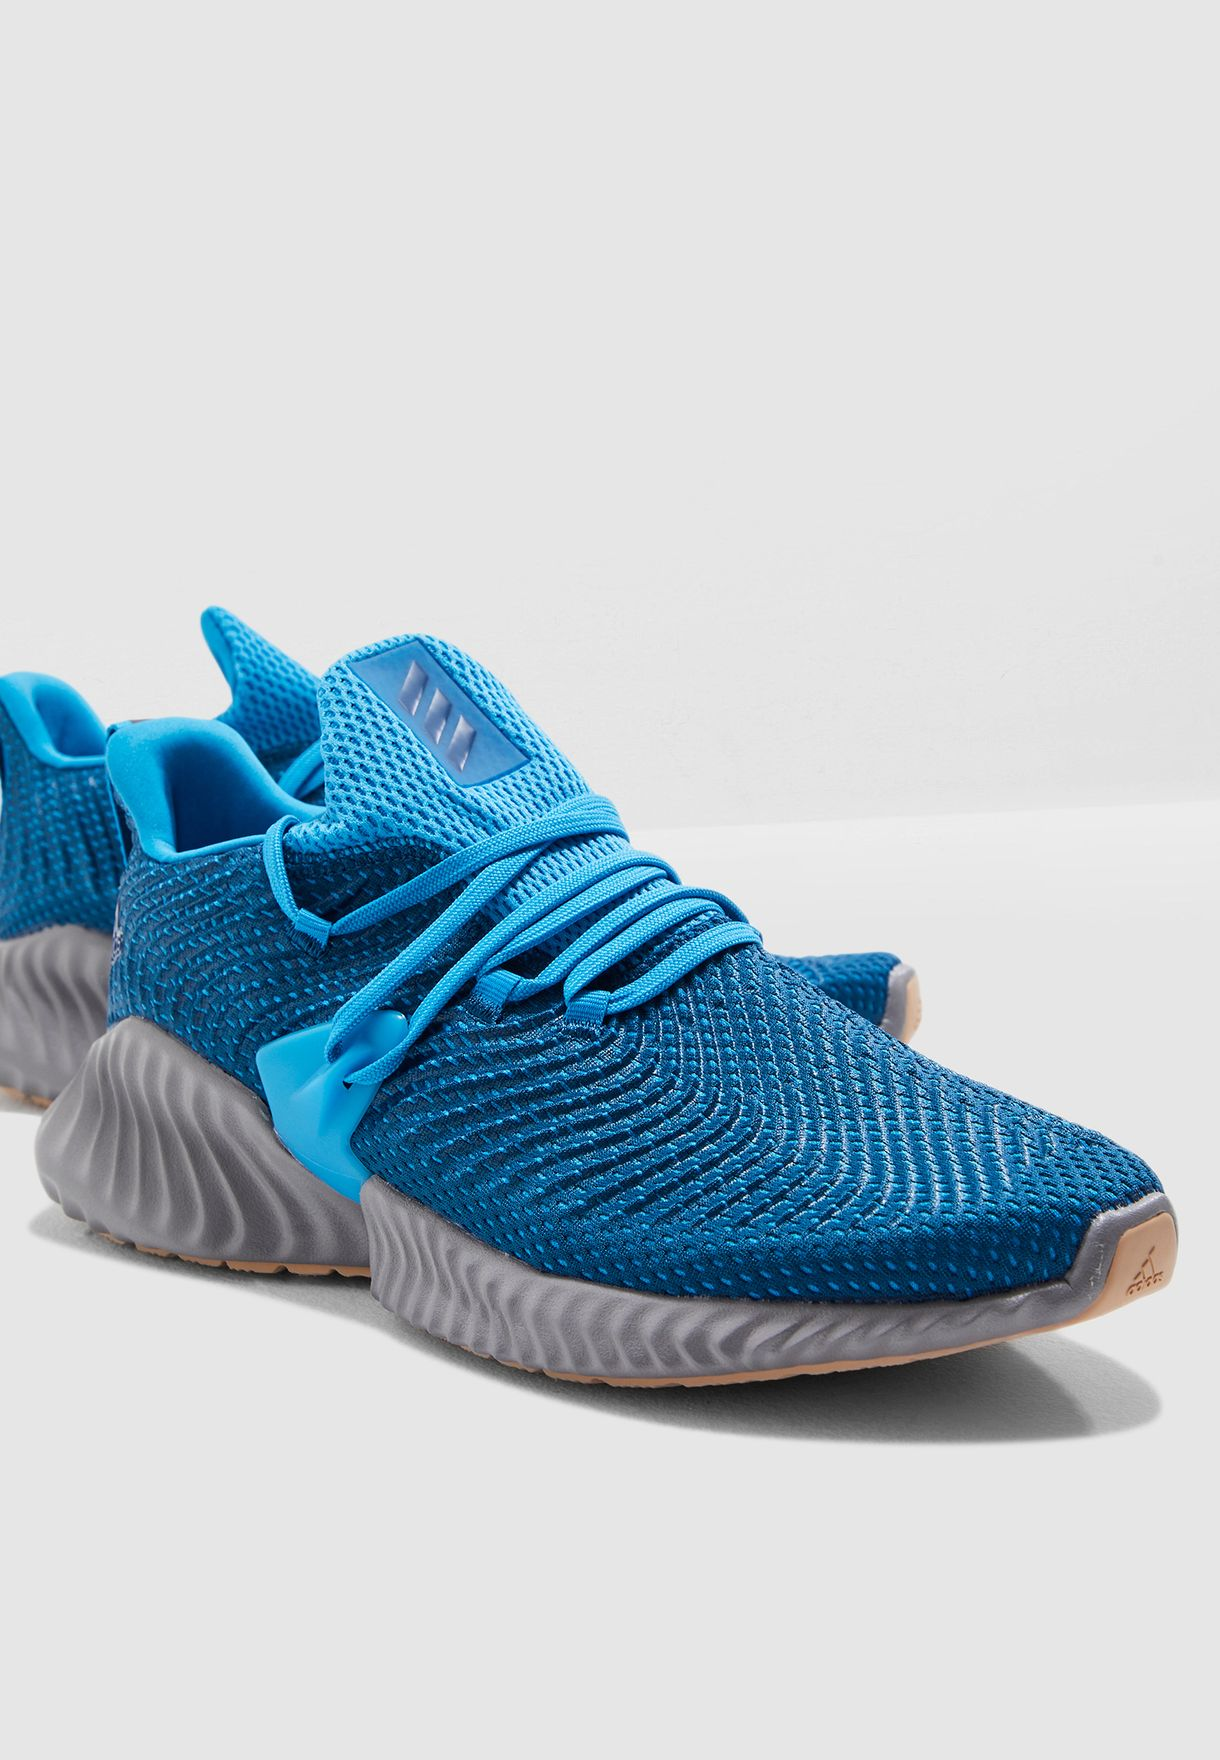 a3baf6384d335 Shop adidas multicolor Alphabounce Instinct BD7112 for Men in Saudi ...